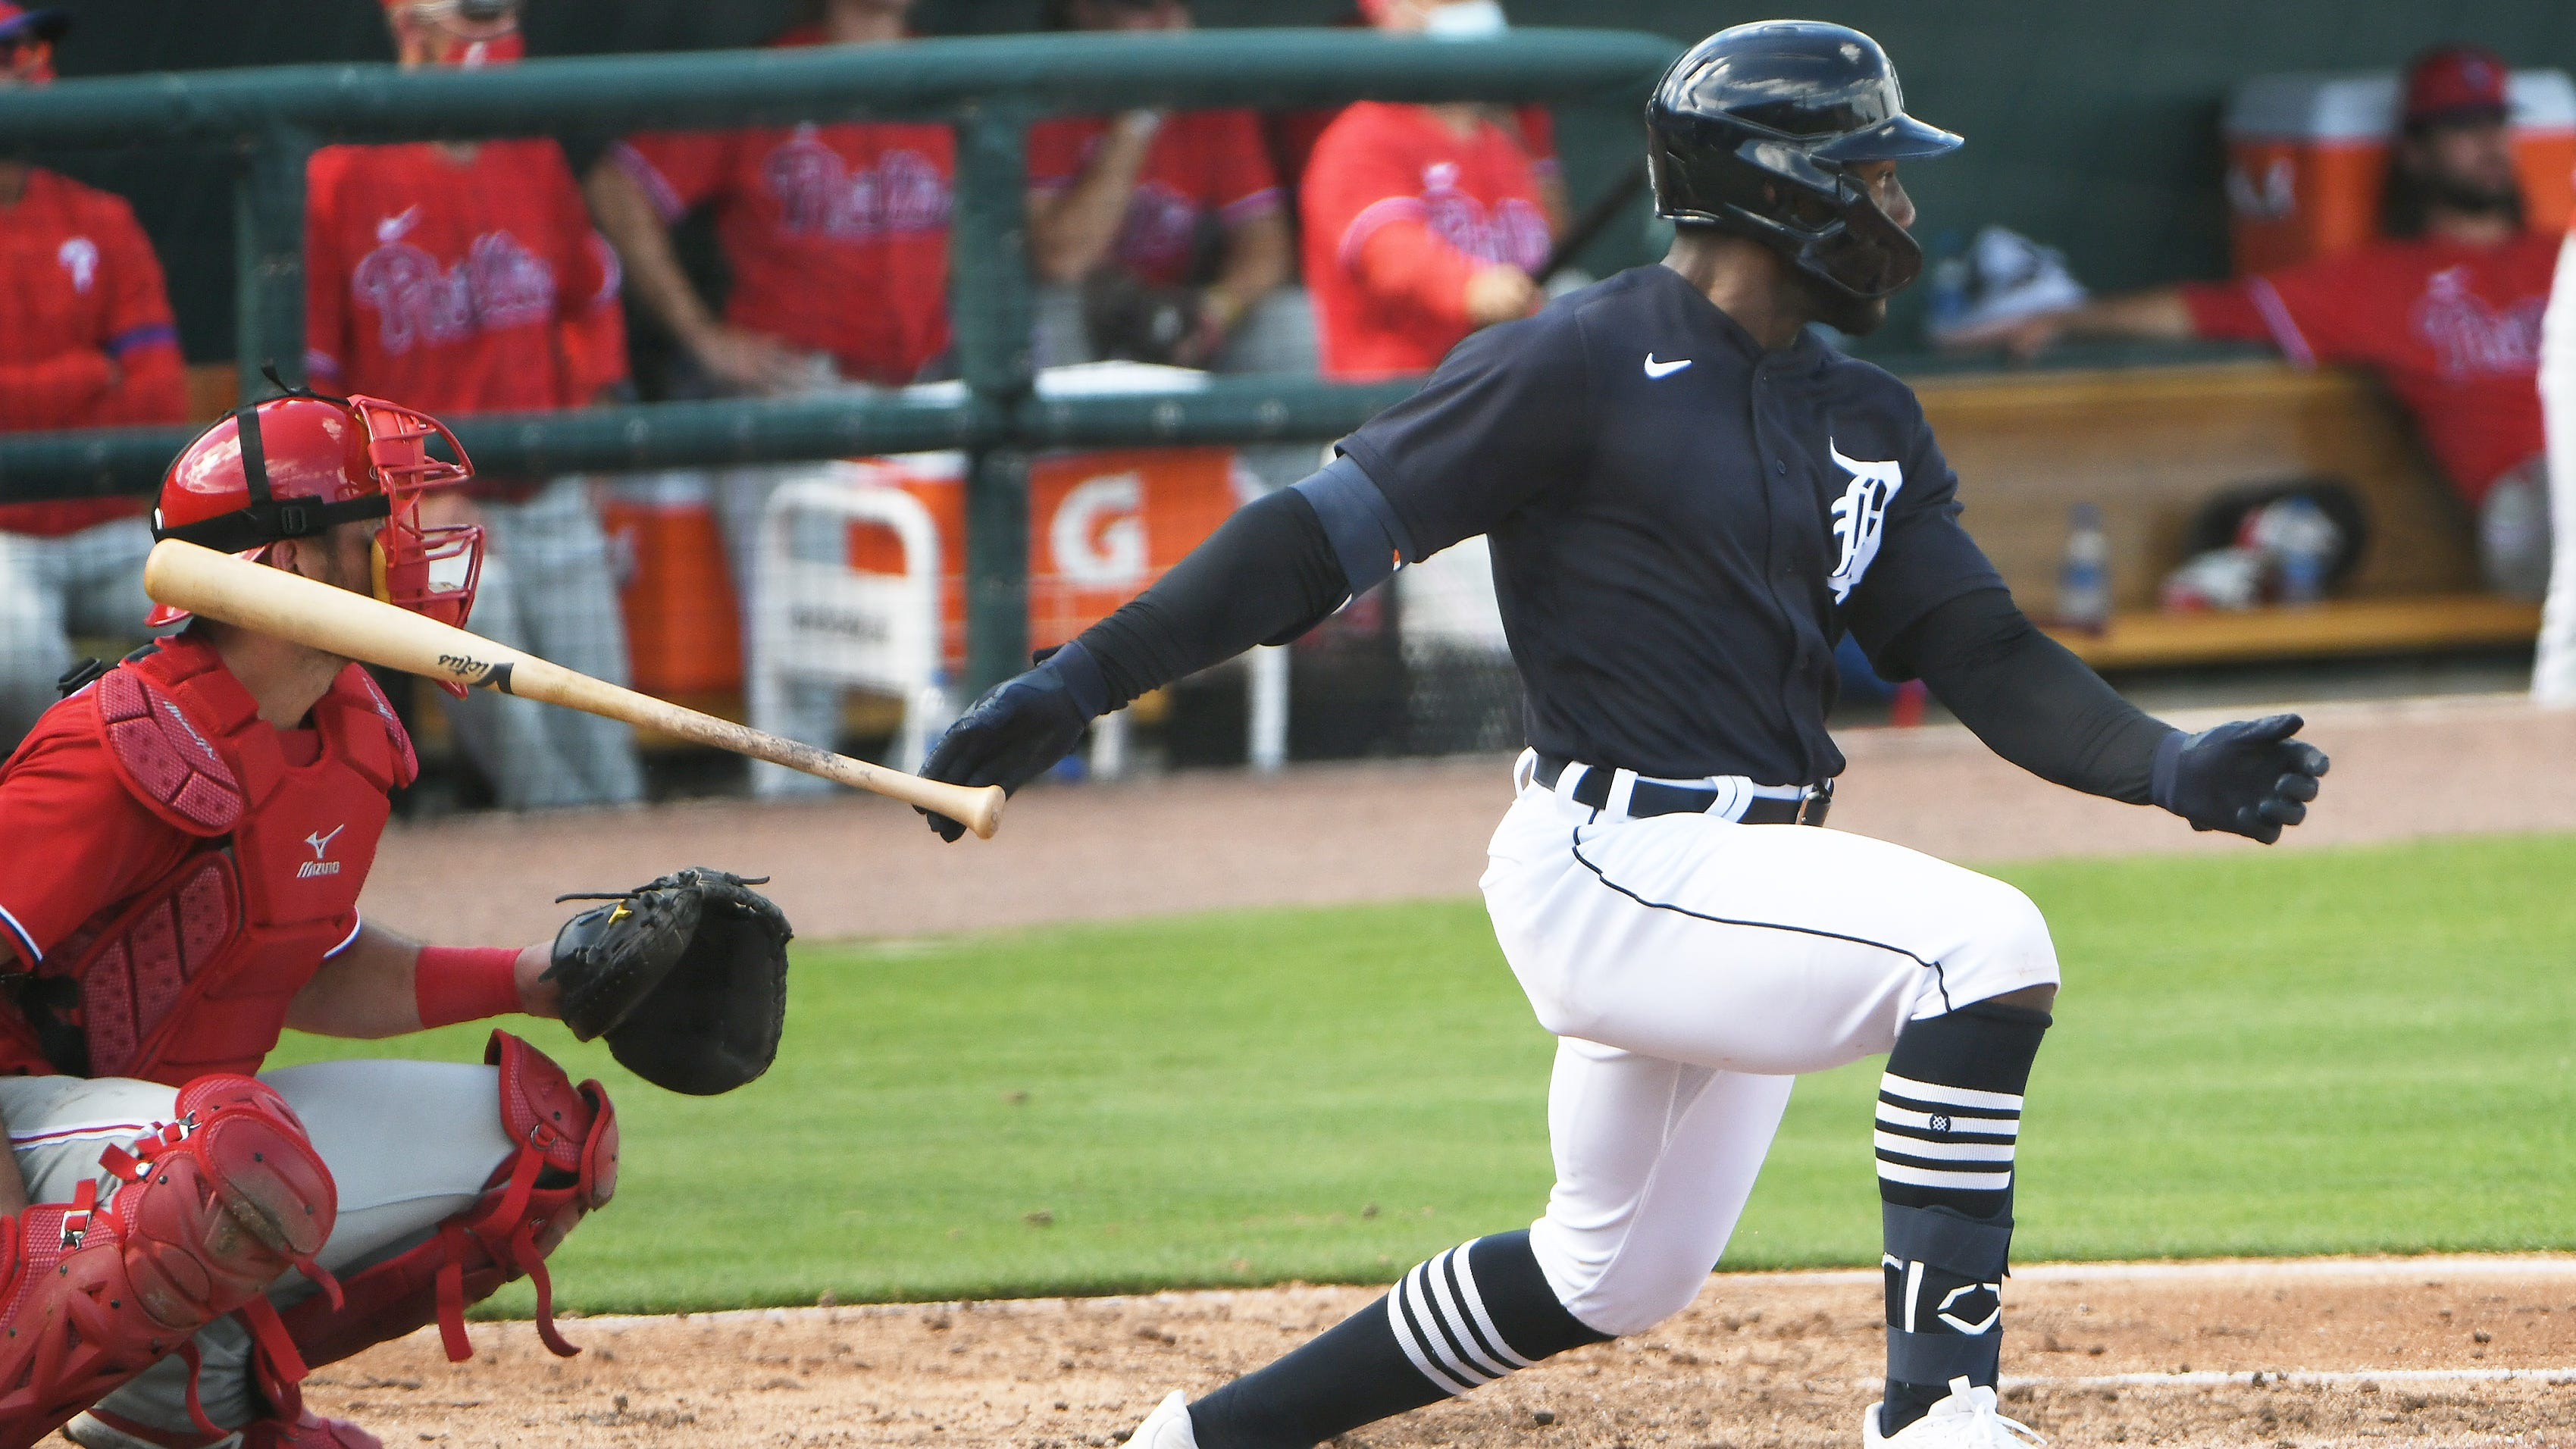 The Tigers selected Akil Baddoo in December's Rule 5 draft from the Minnesota Twins.